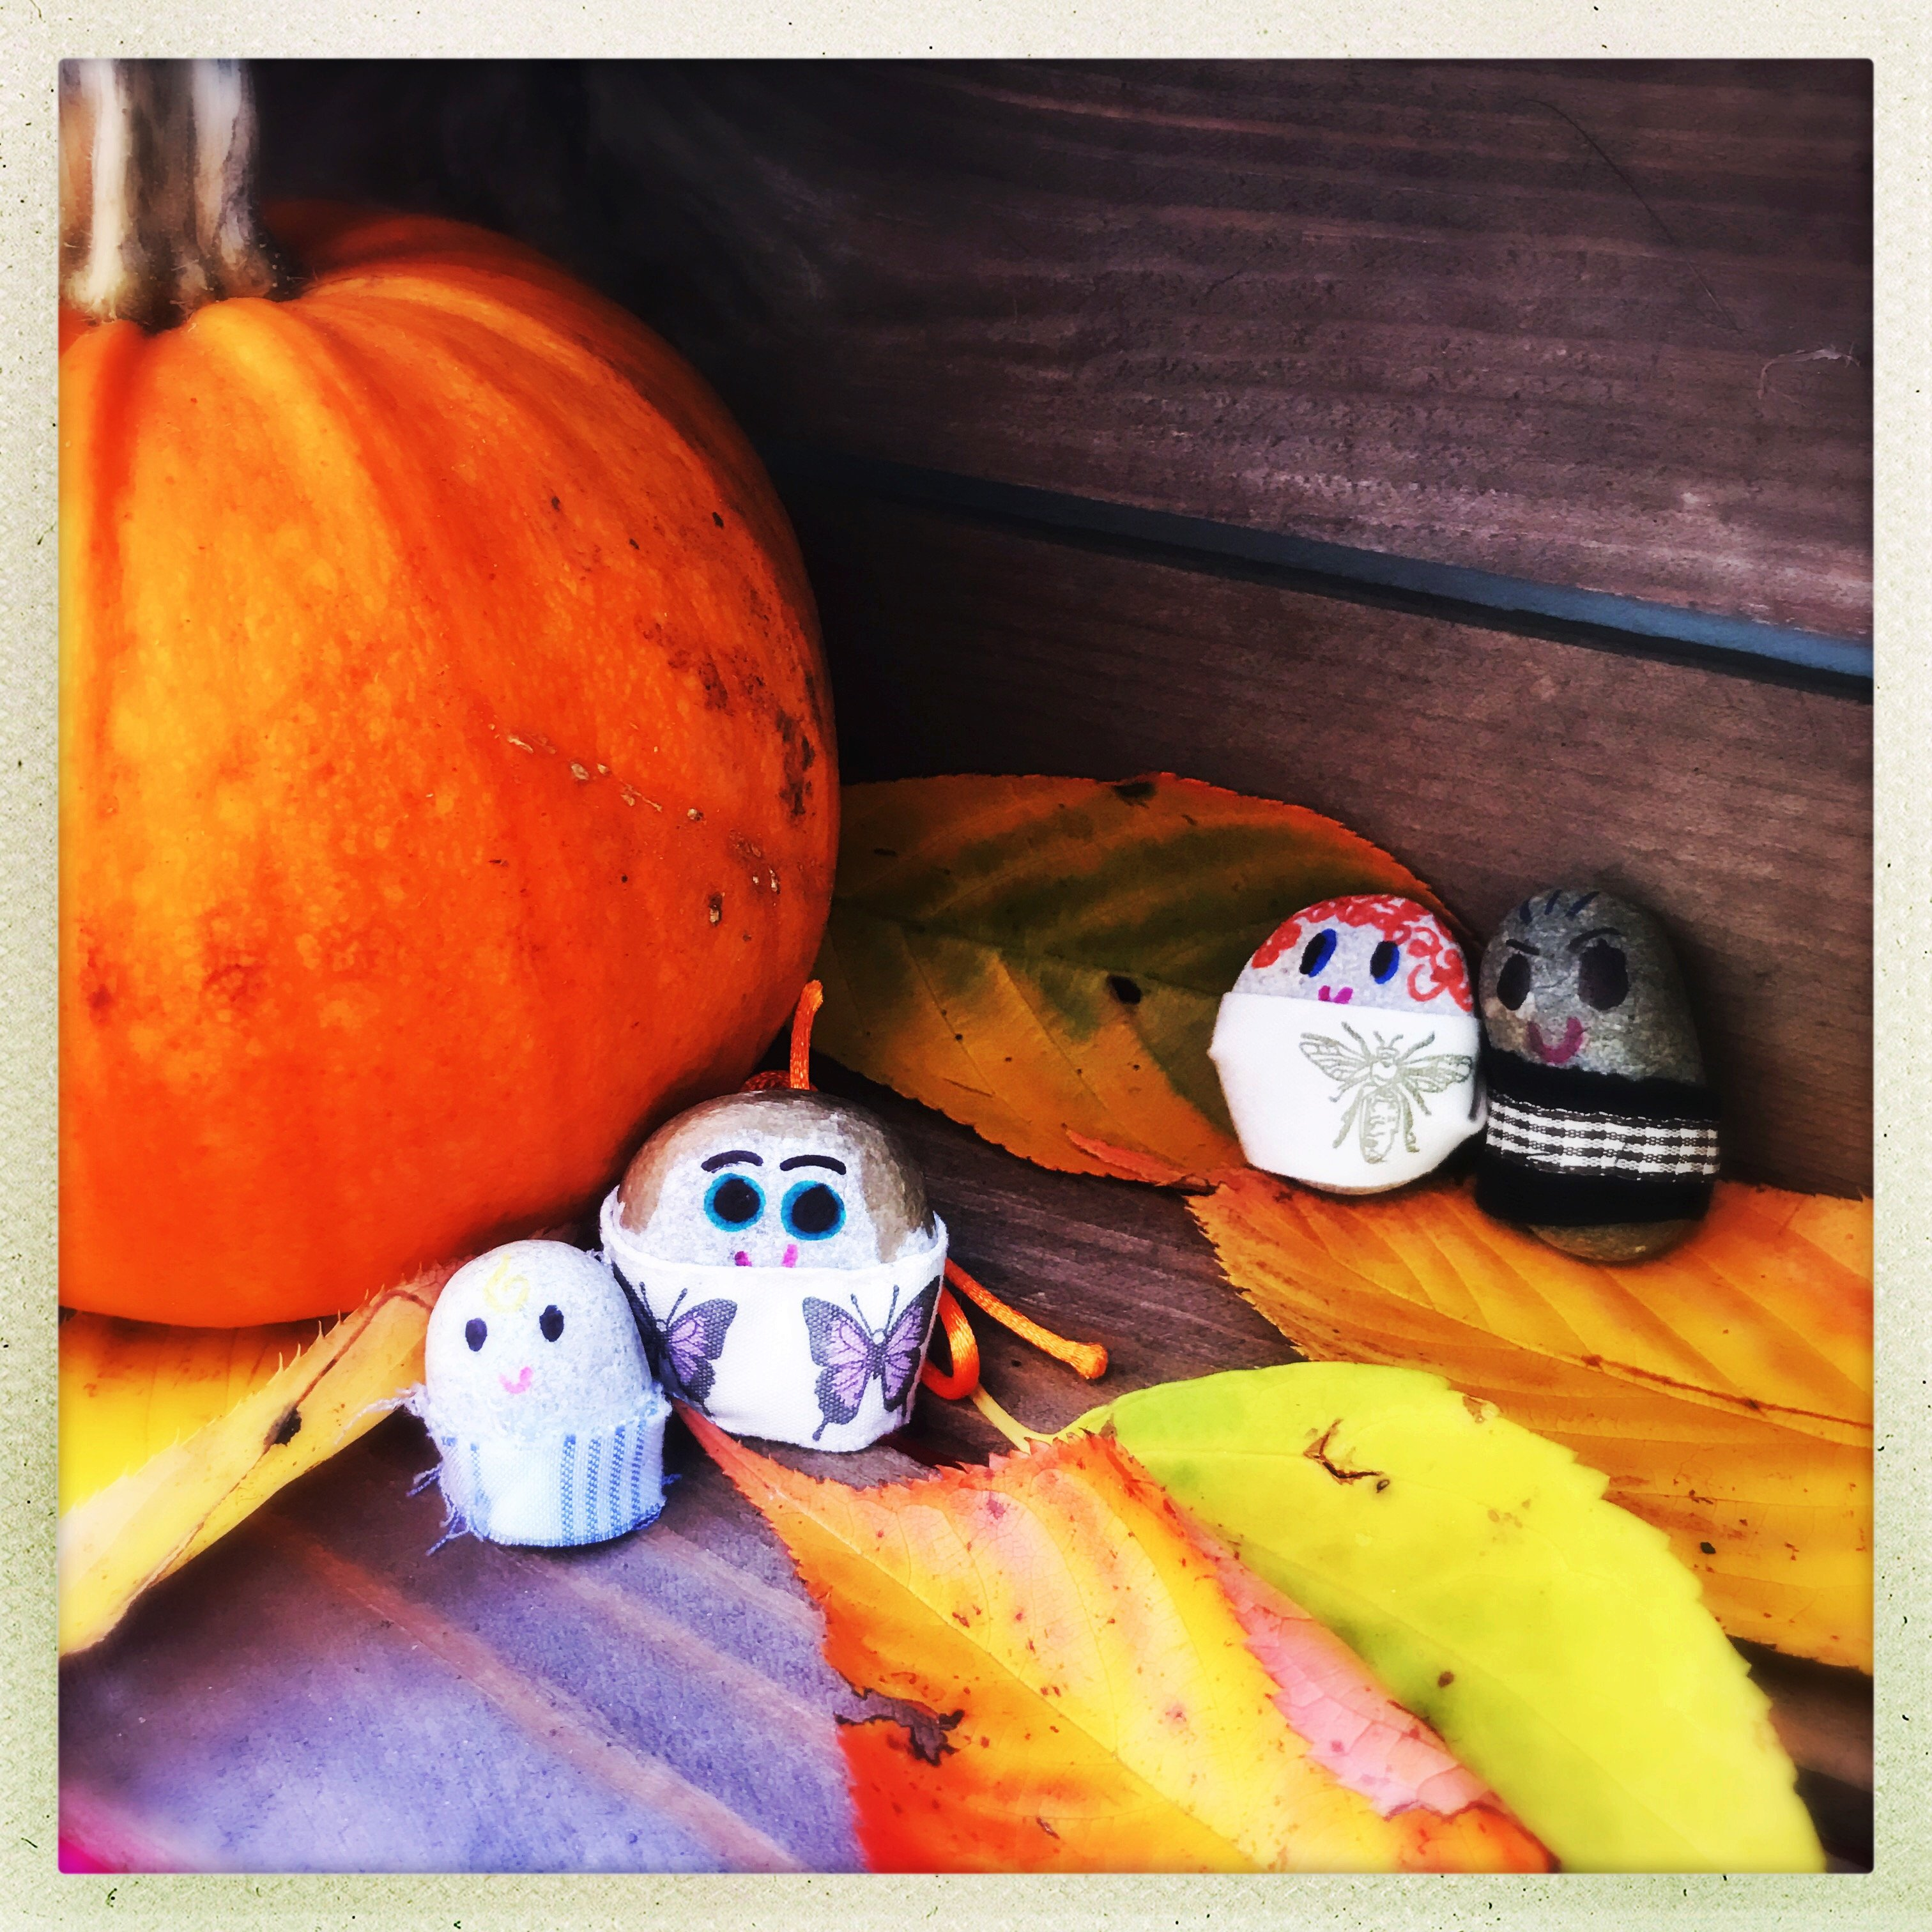 pebble people kids craft, nature crafts for kids, autumn nature craft, nature activities for kids,